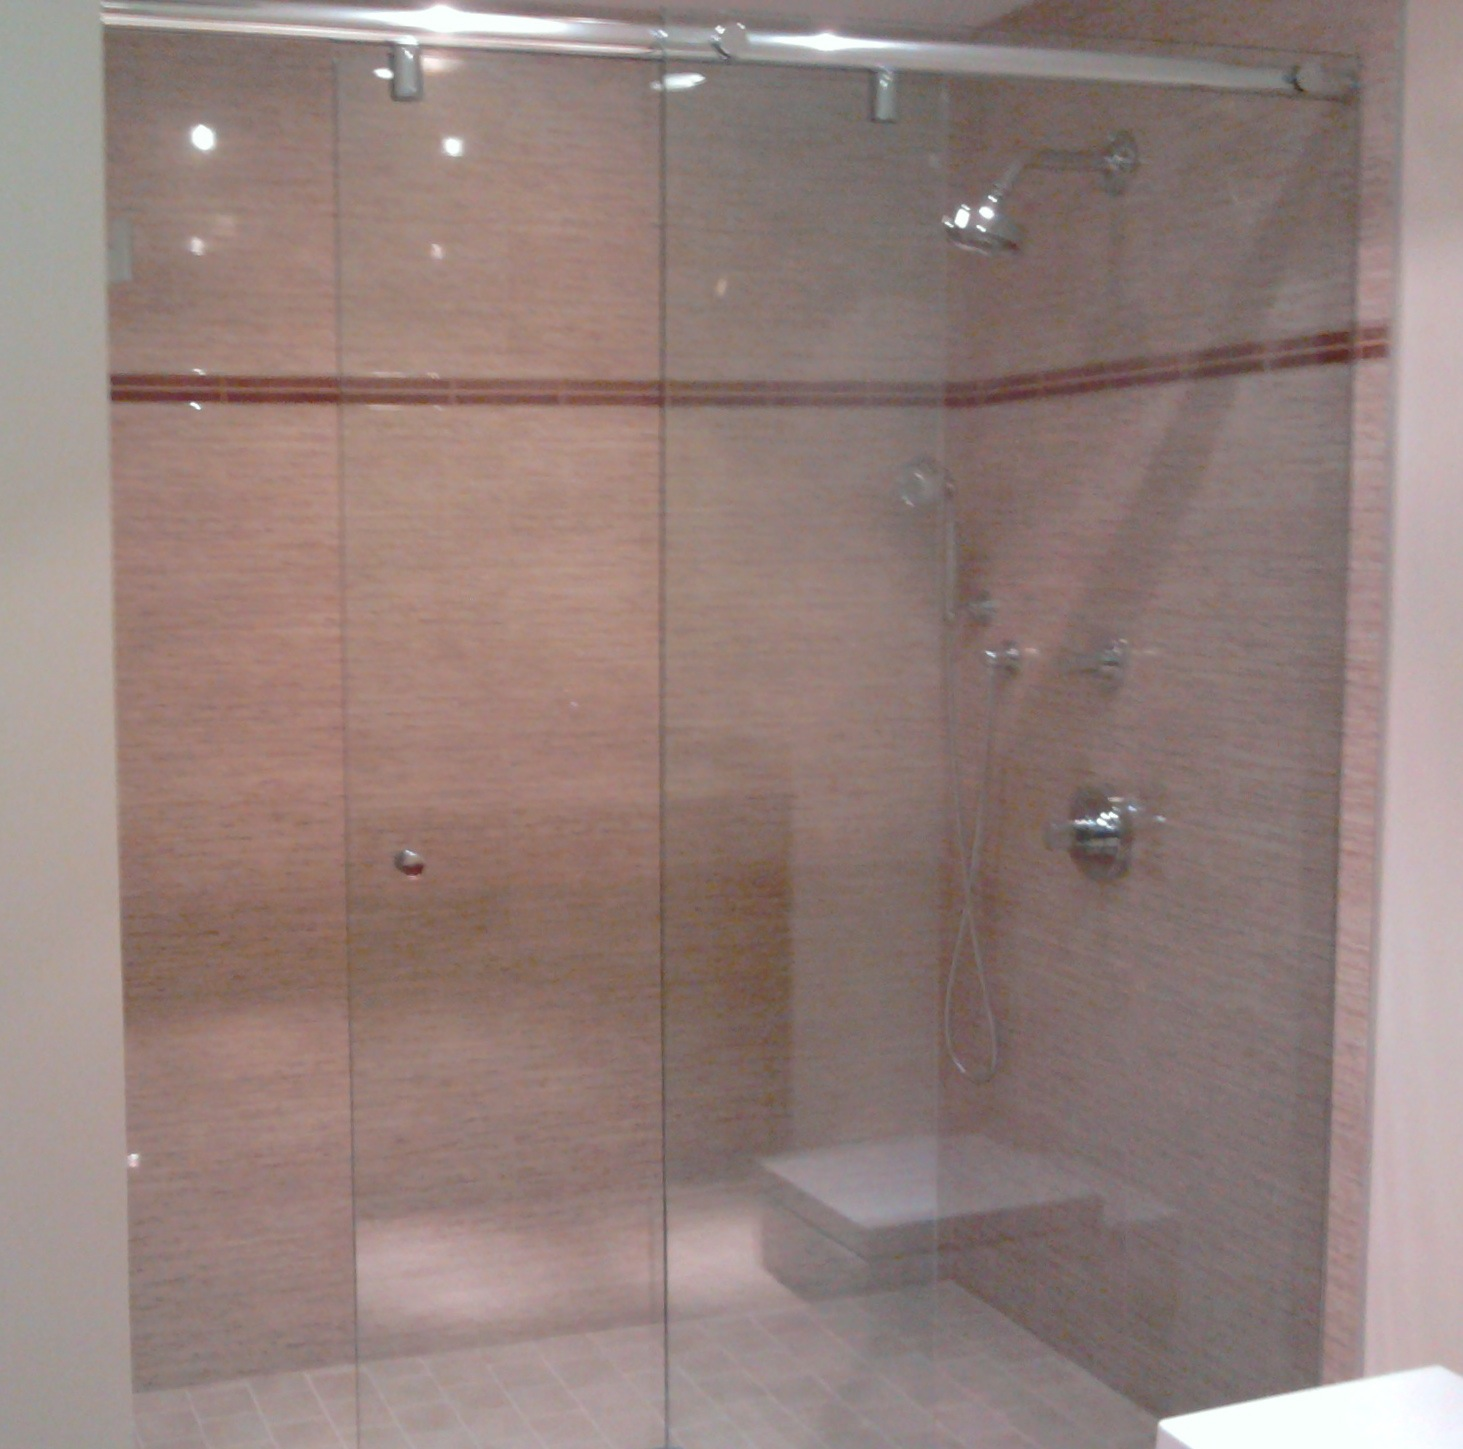 Hydroslide Frameless Glass Shower Units Are Popular In